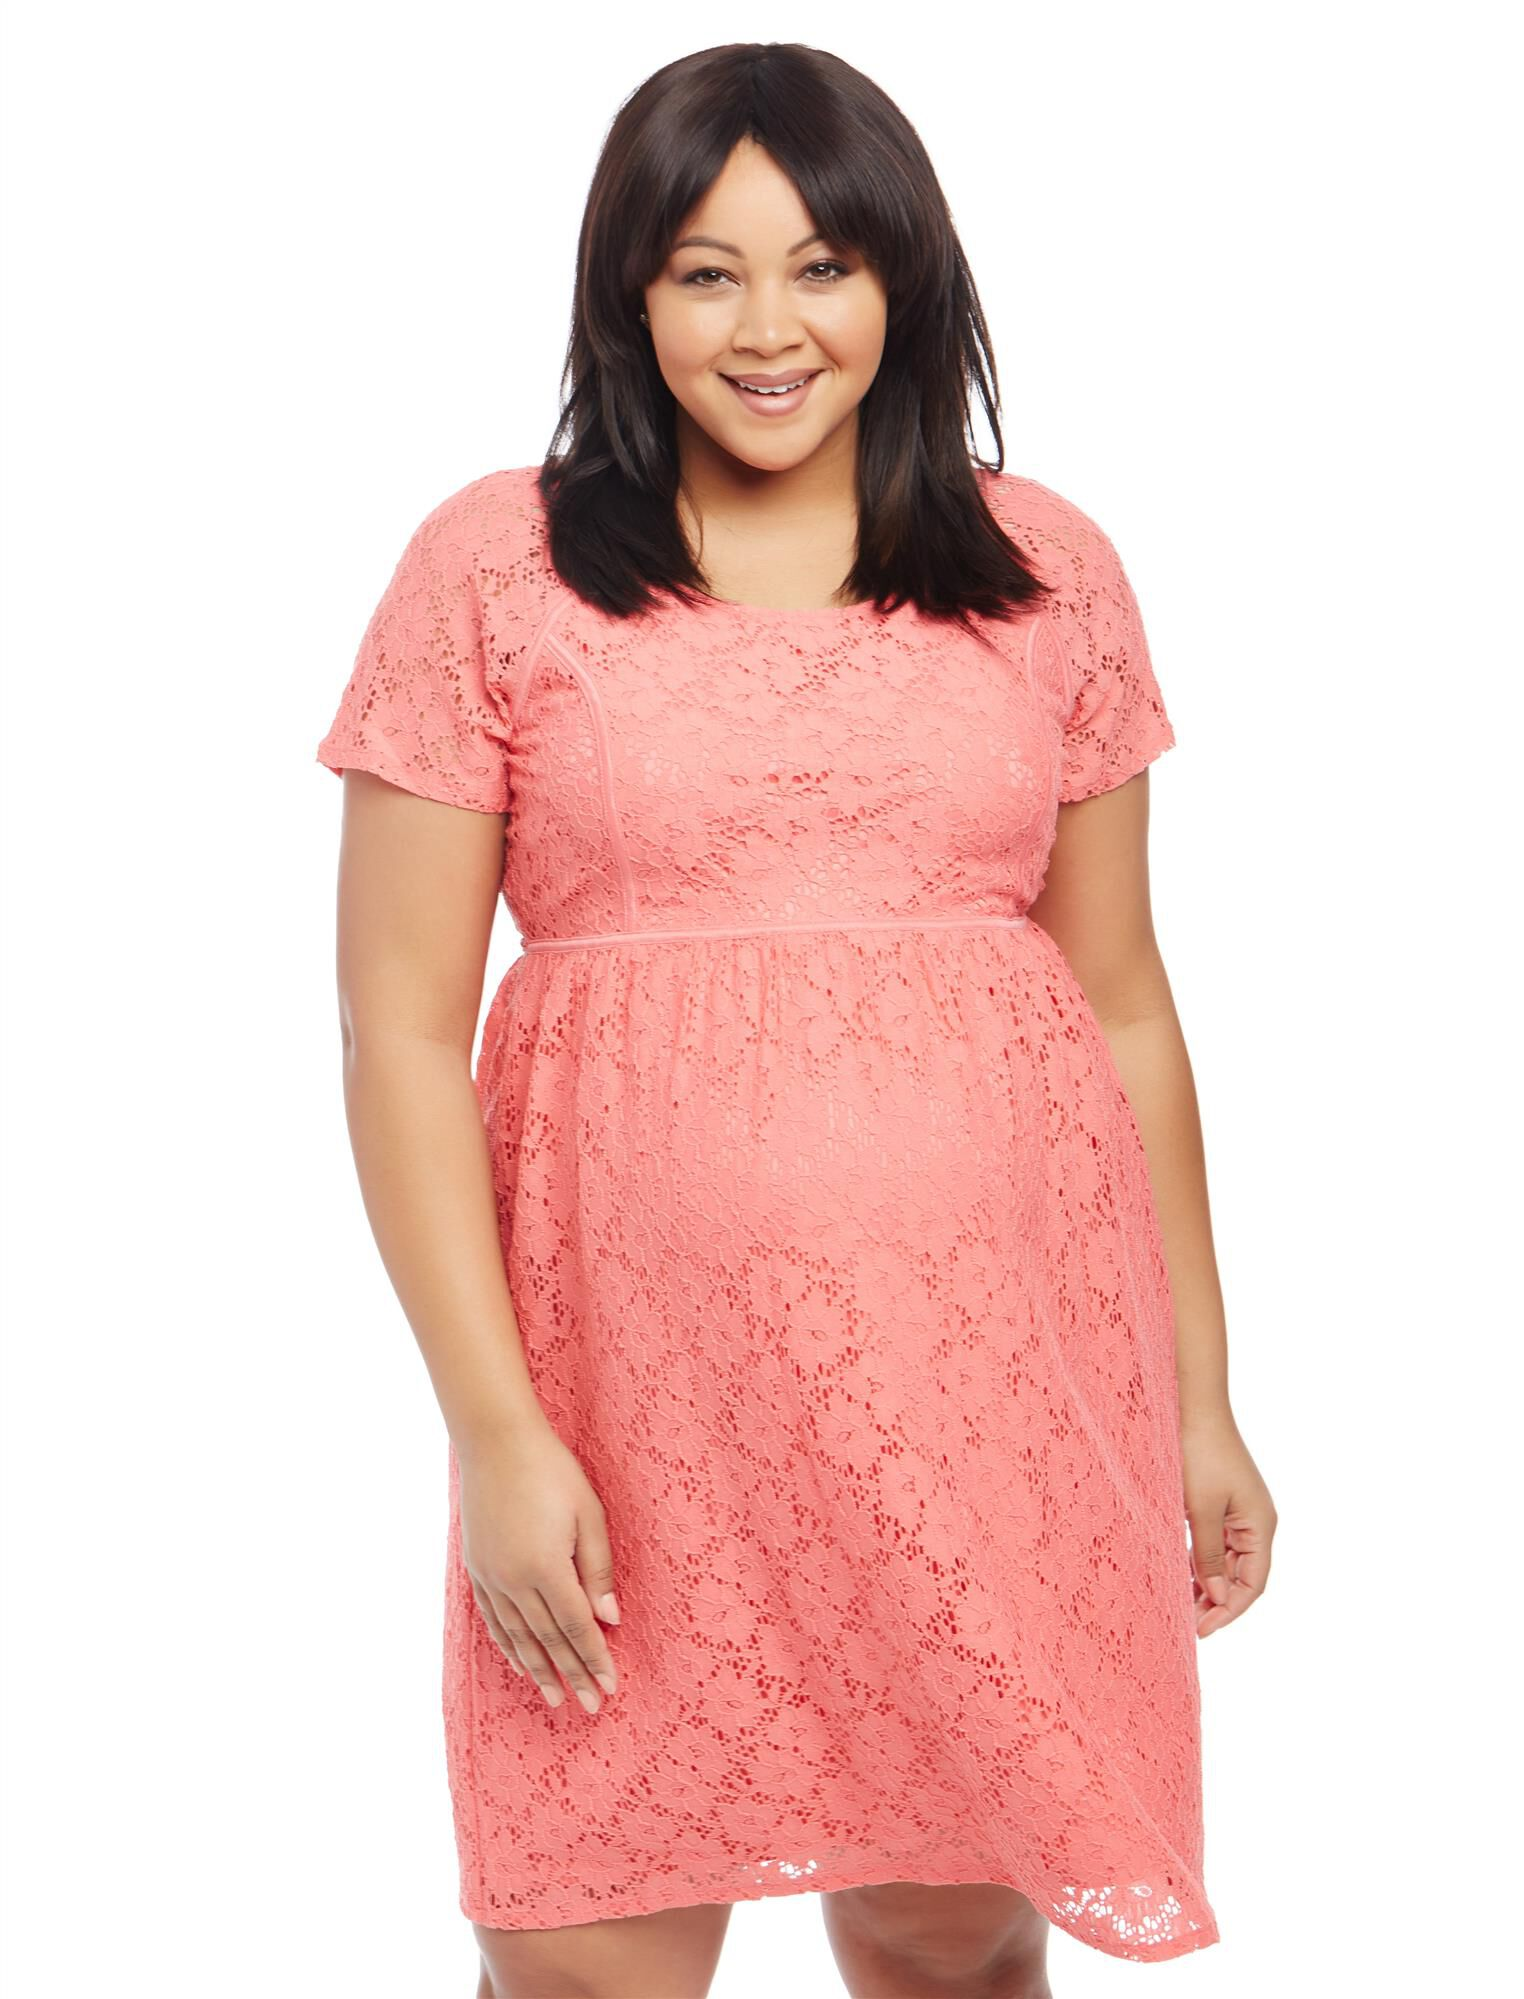 Vintage Maternity Clothing Styles 1910-1960 Plus Size Crochet Lace Maternity Dress $49.98 AT vintagedancer.com